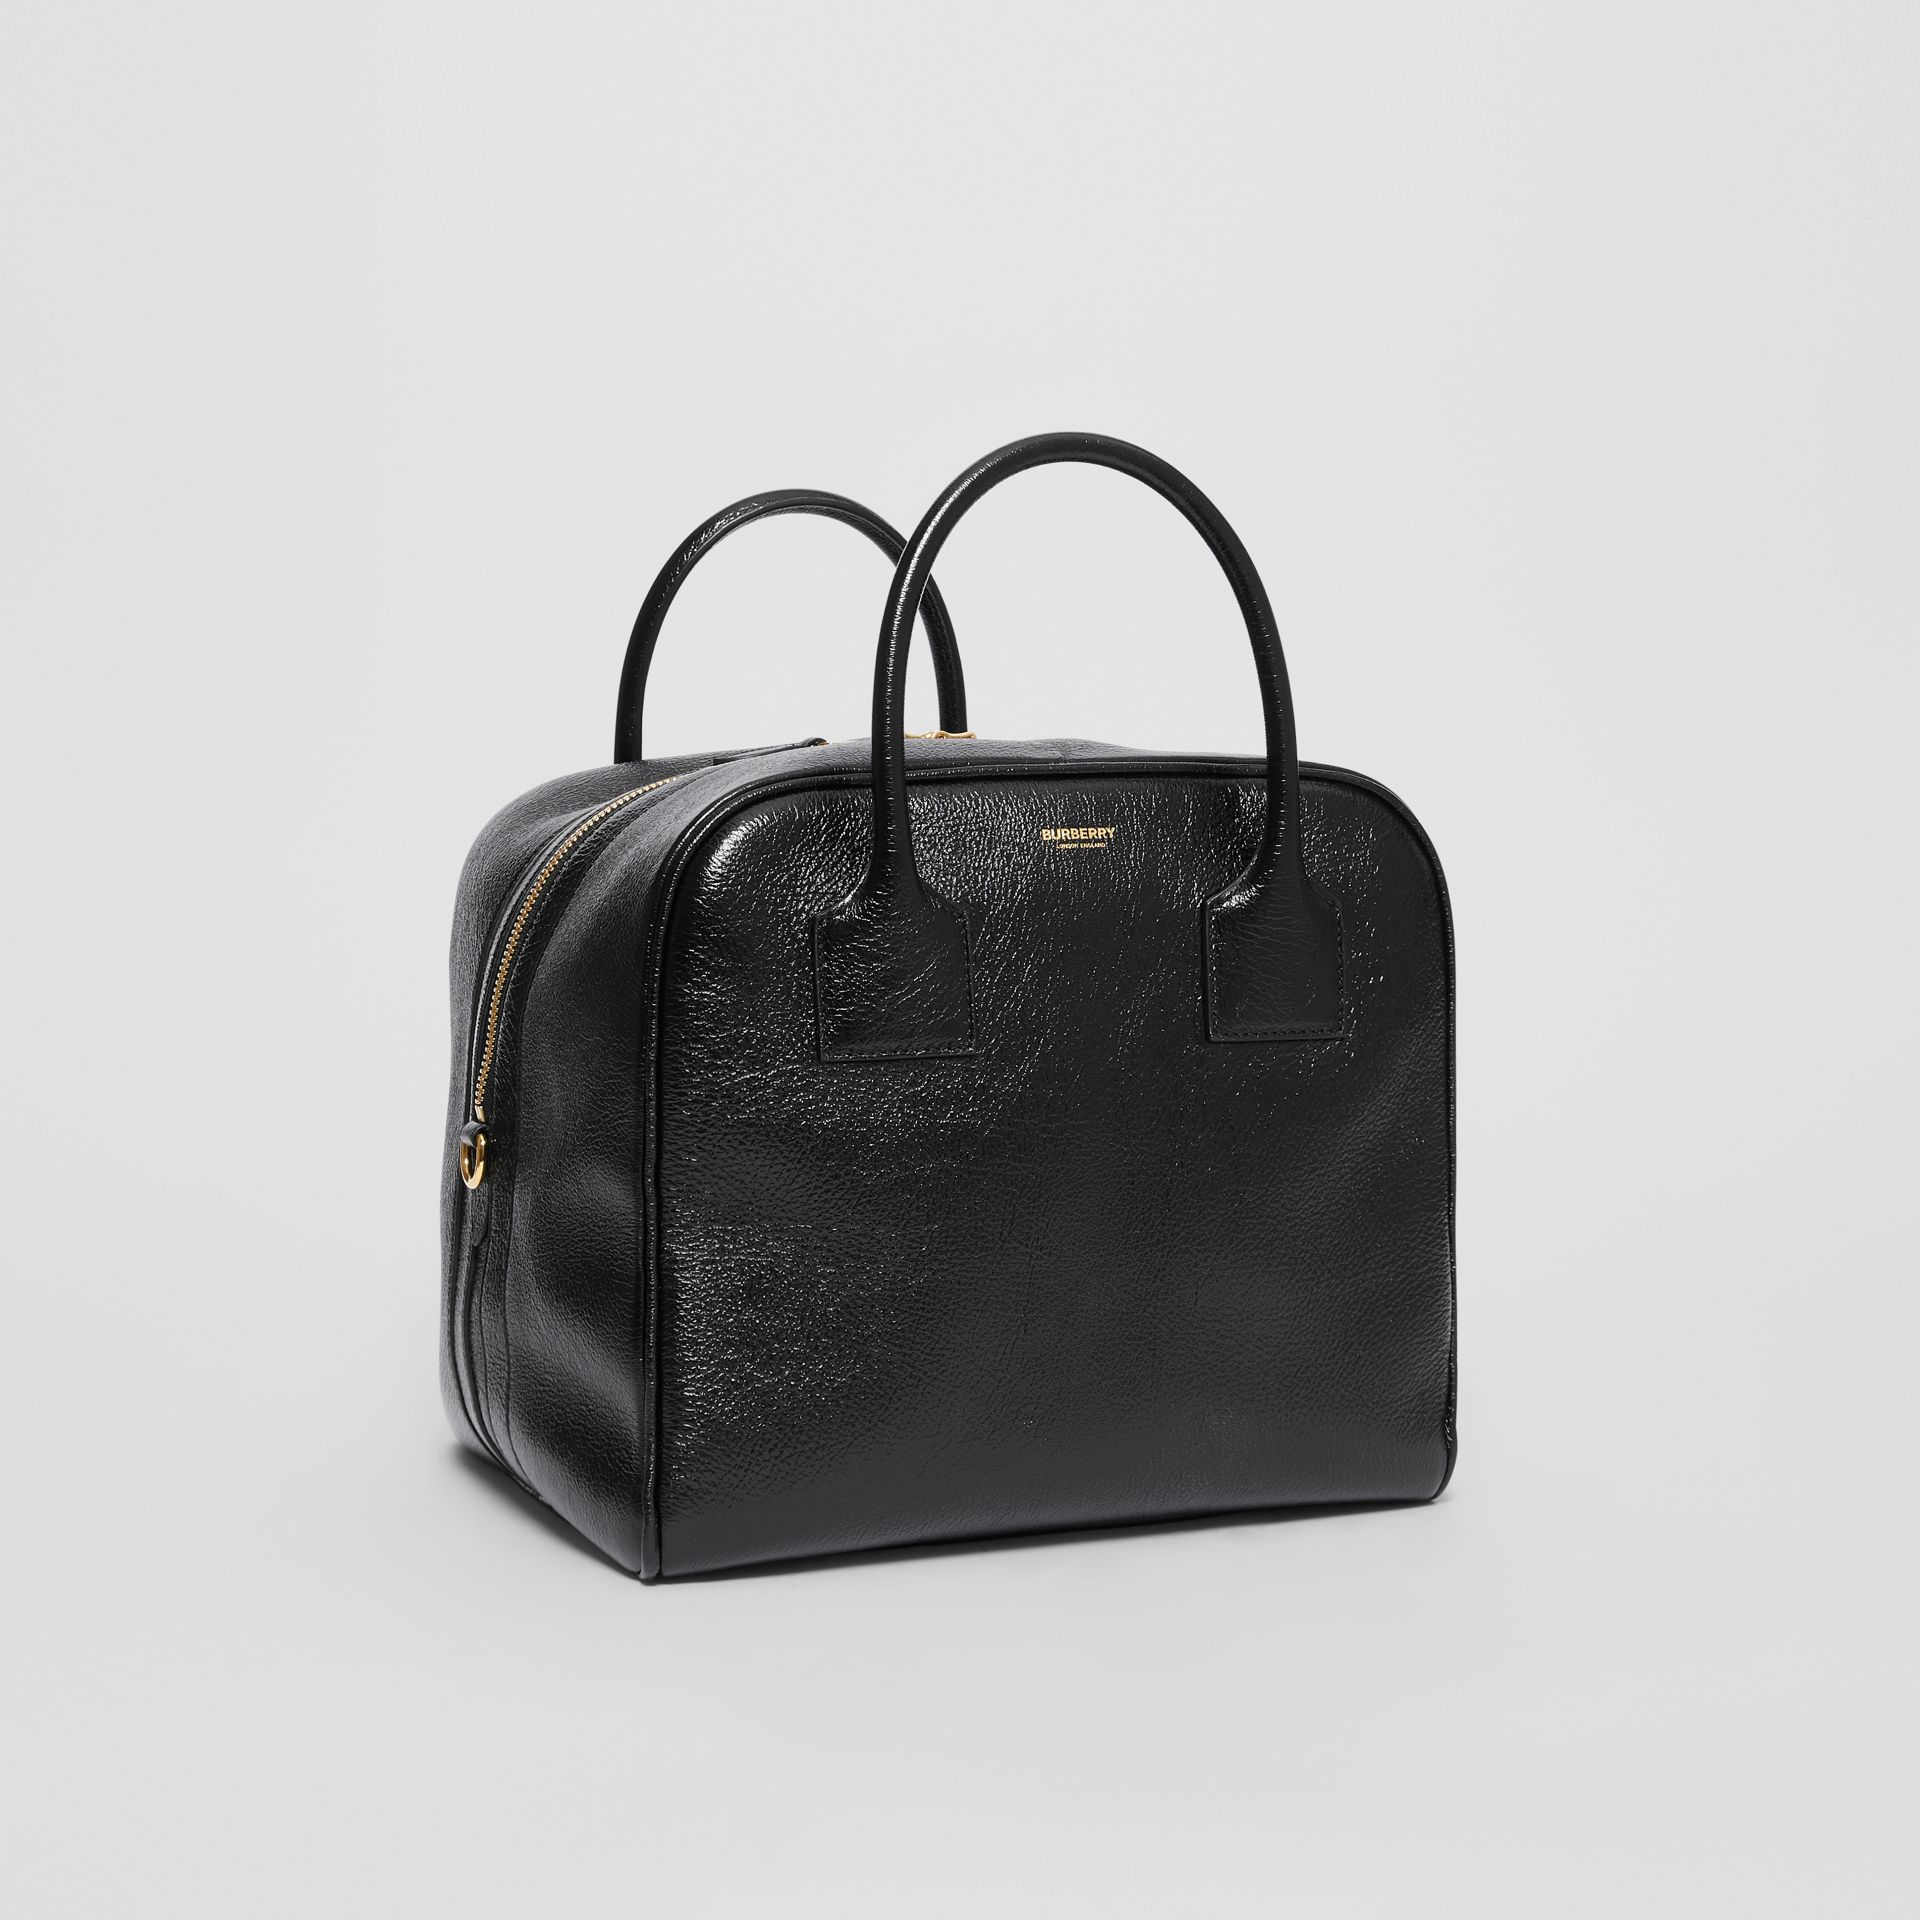 Medium Lambskin Cube Bag in Black - Women | Burberry Singapore - gallery image 6